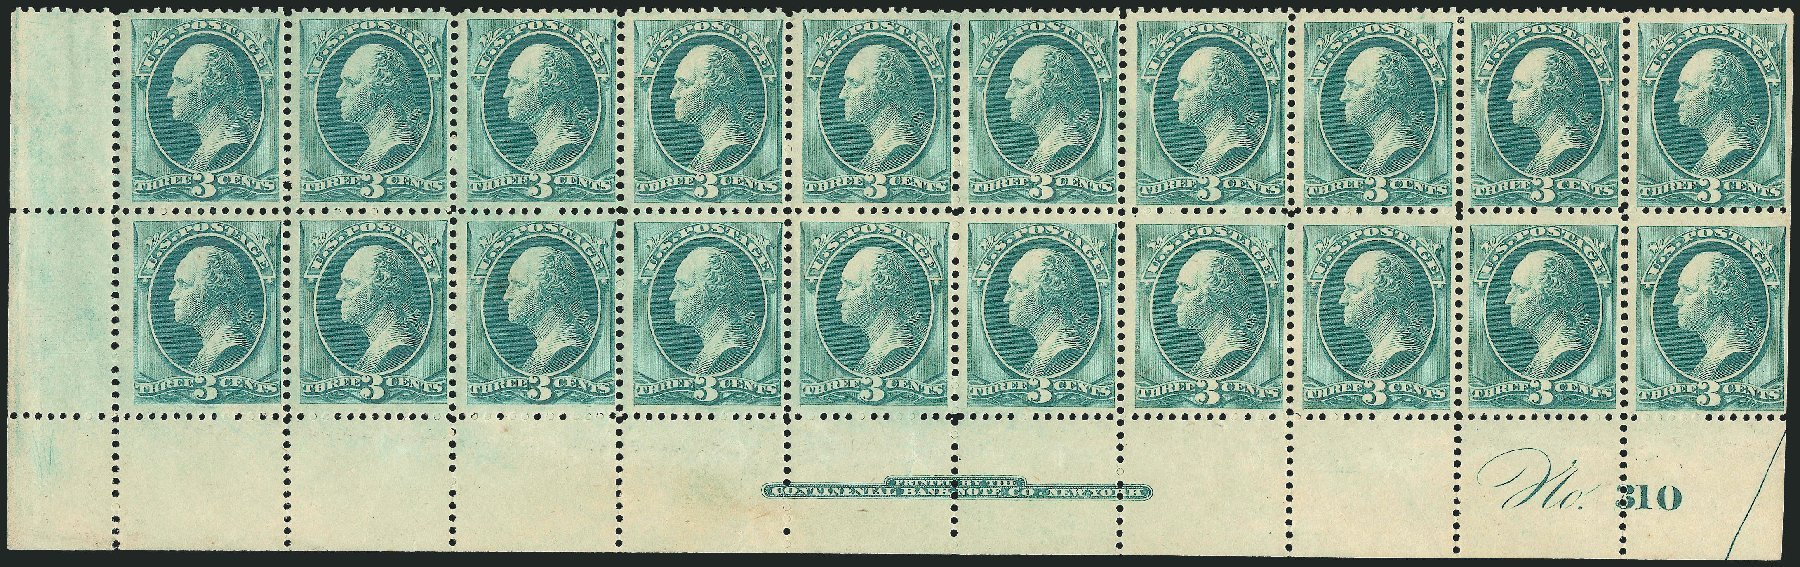 US Stamps Value Scott Cat. 184 - 3c 1879 Washington. Robert Siegel Auction Galleries, Nov 2014, Sale 1084, Lot 3447